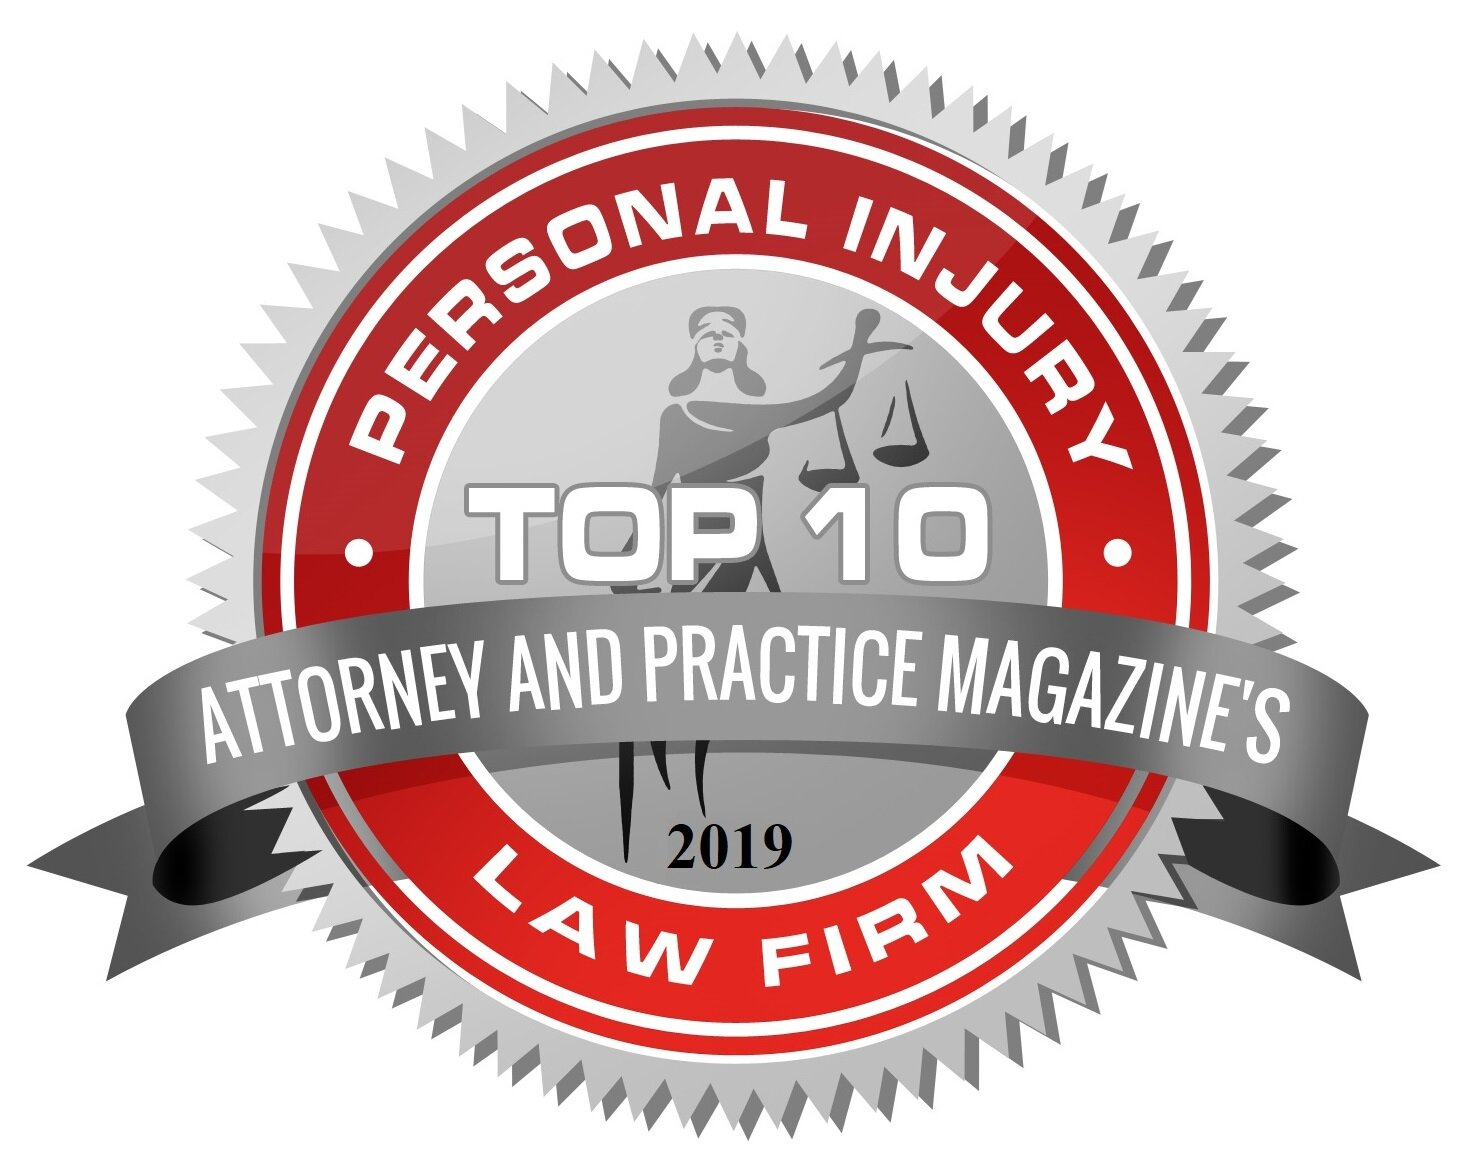 2019 A&P Top Law Firm.jpg